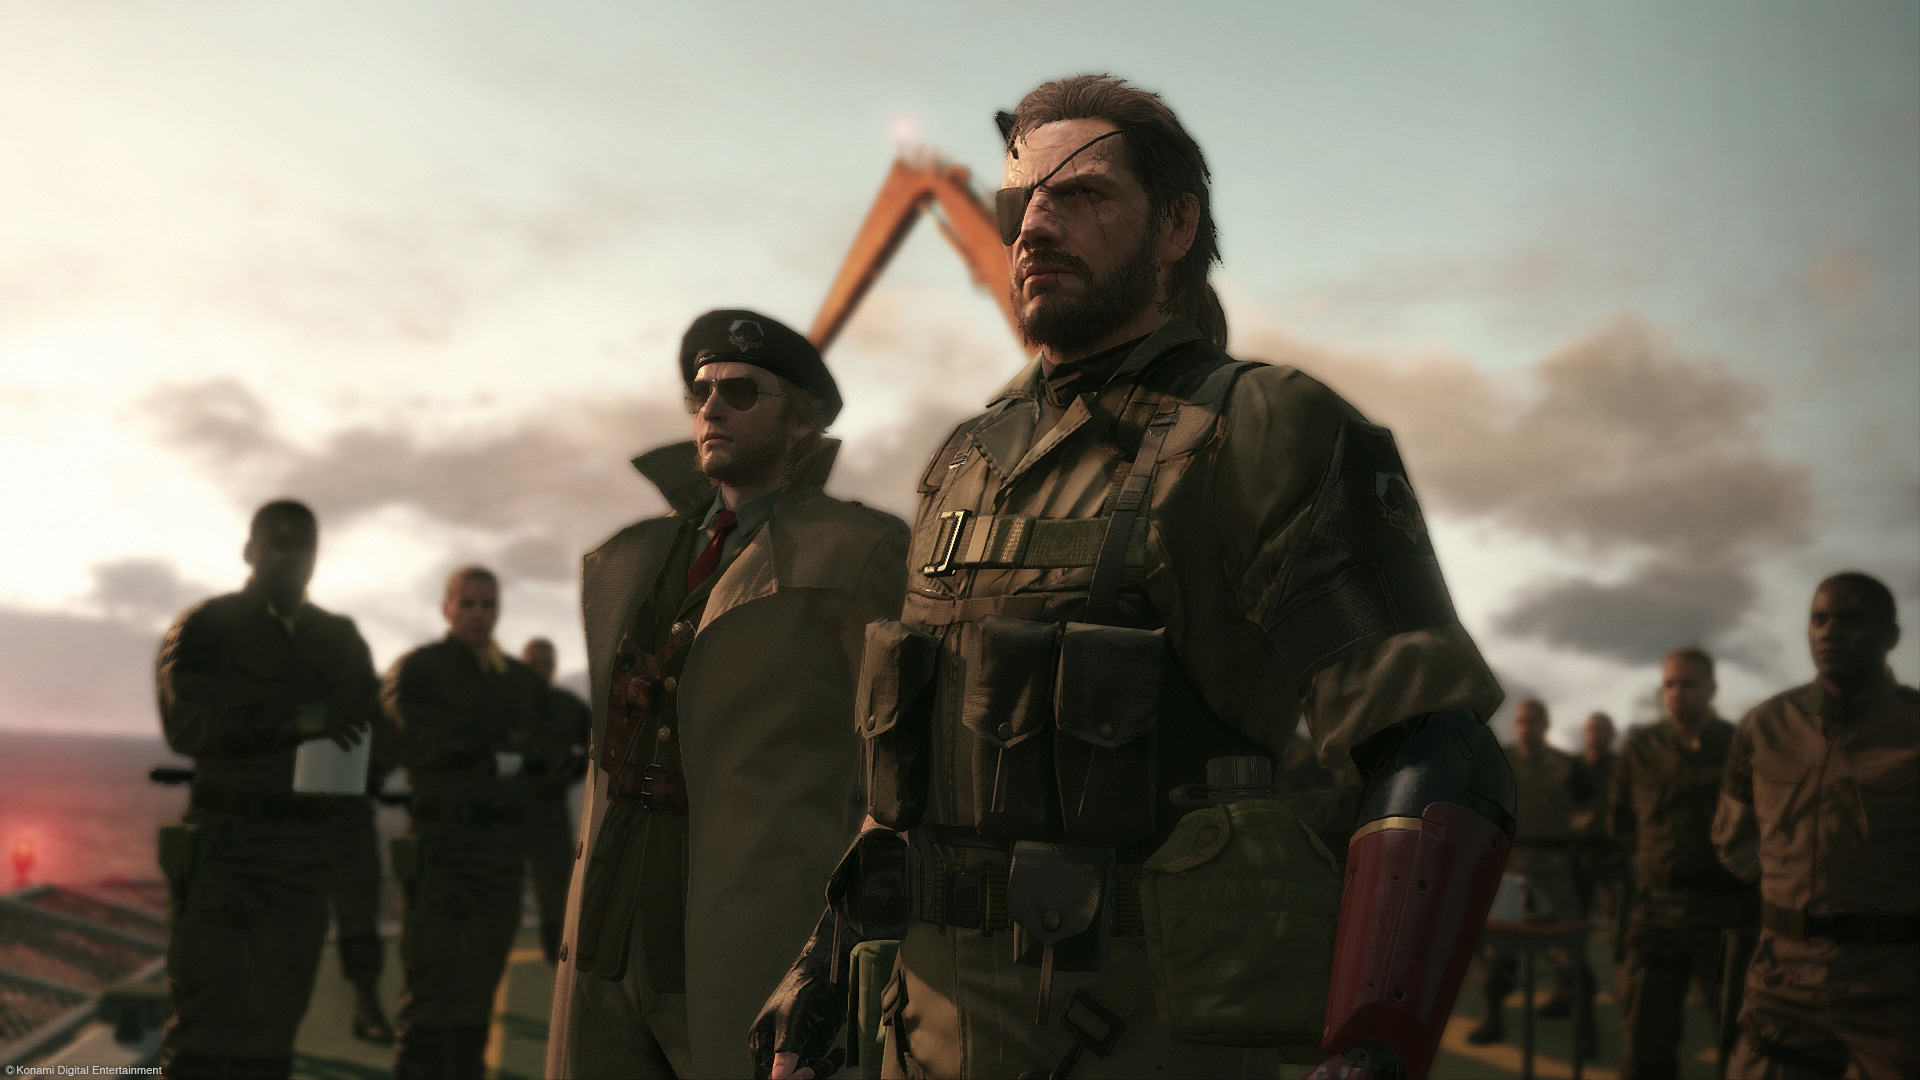 metal gear5 9 Things You Should Do In Metal Gear Solid 5: The Phantom Pain